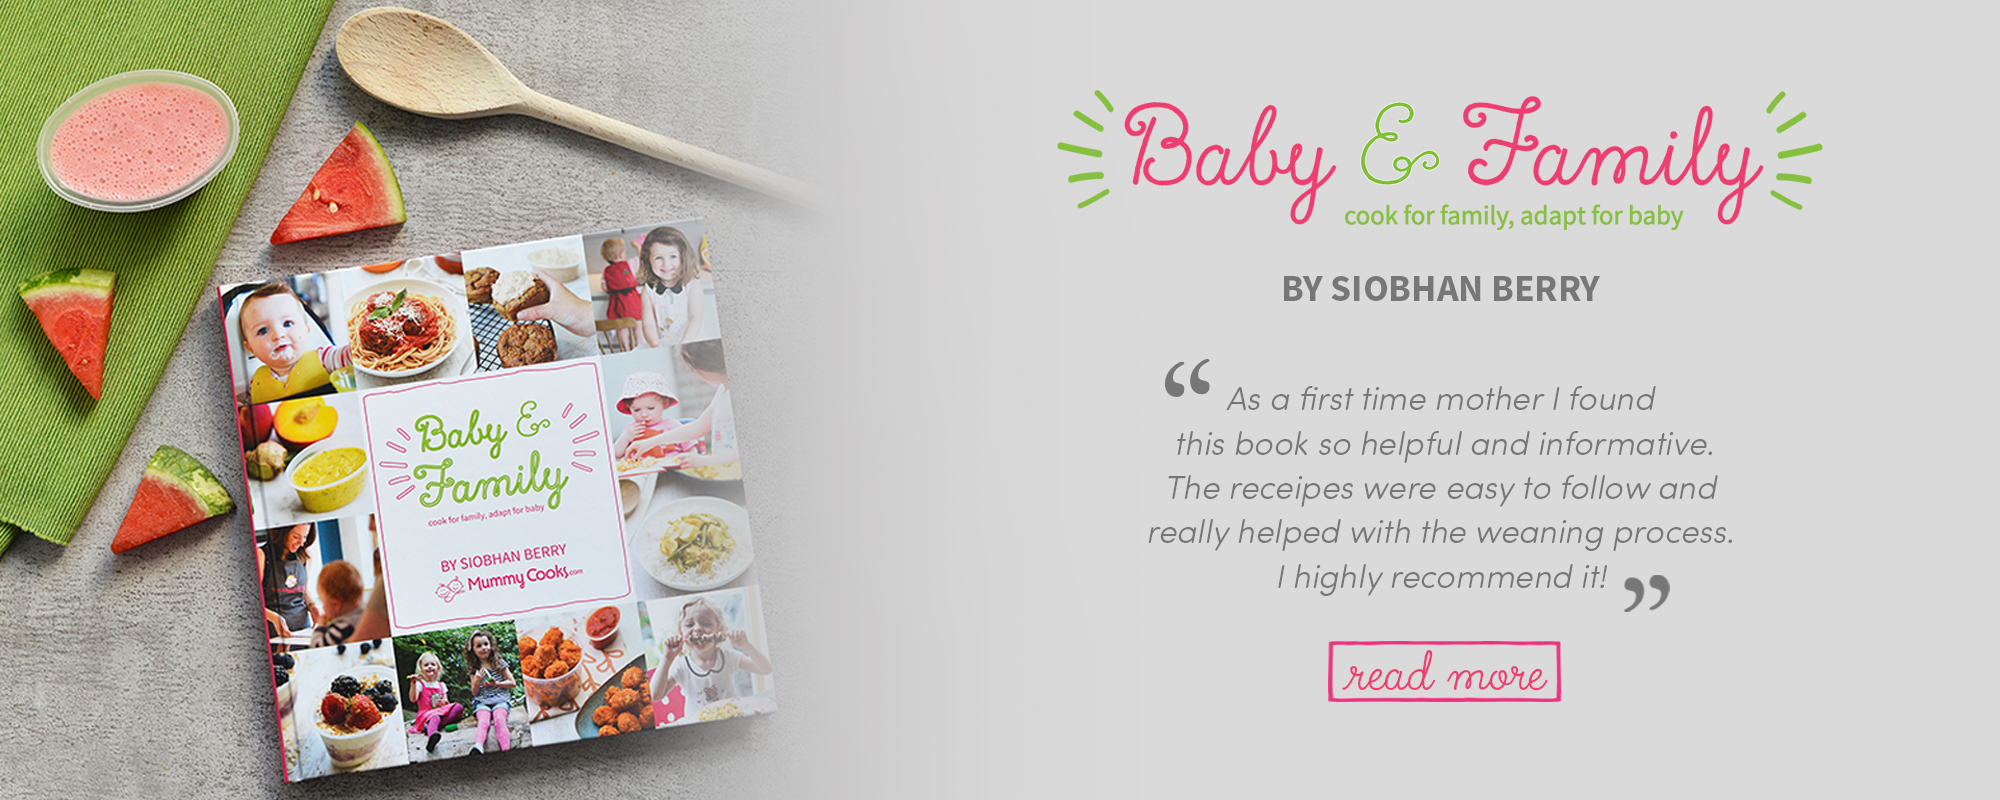 Baby and Family book